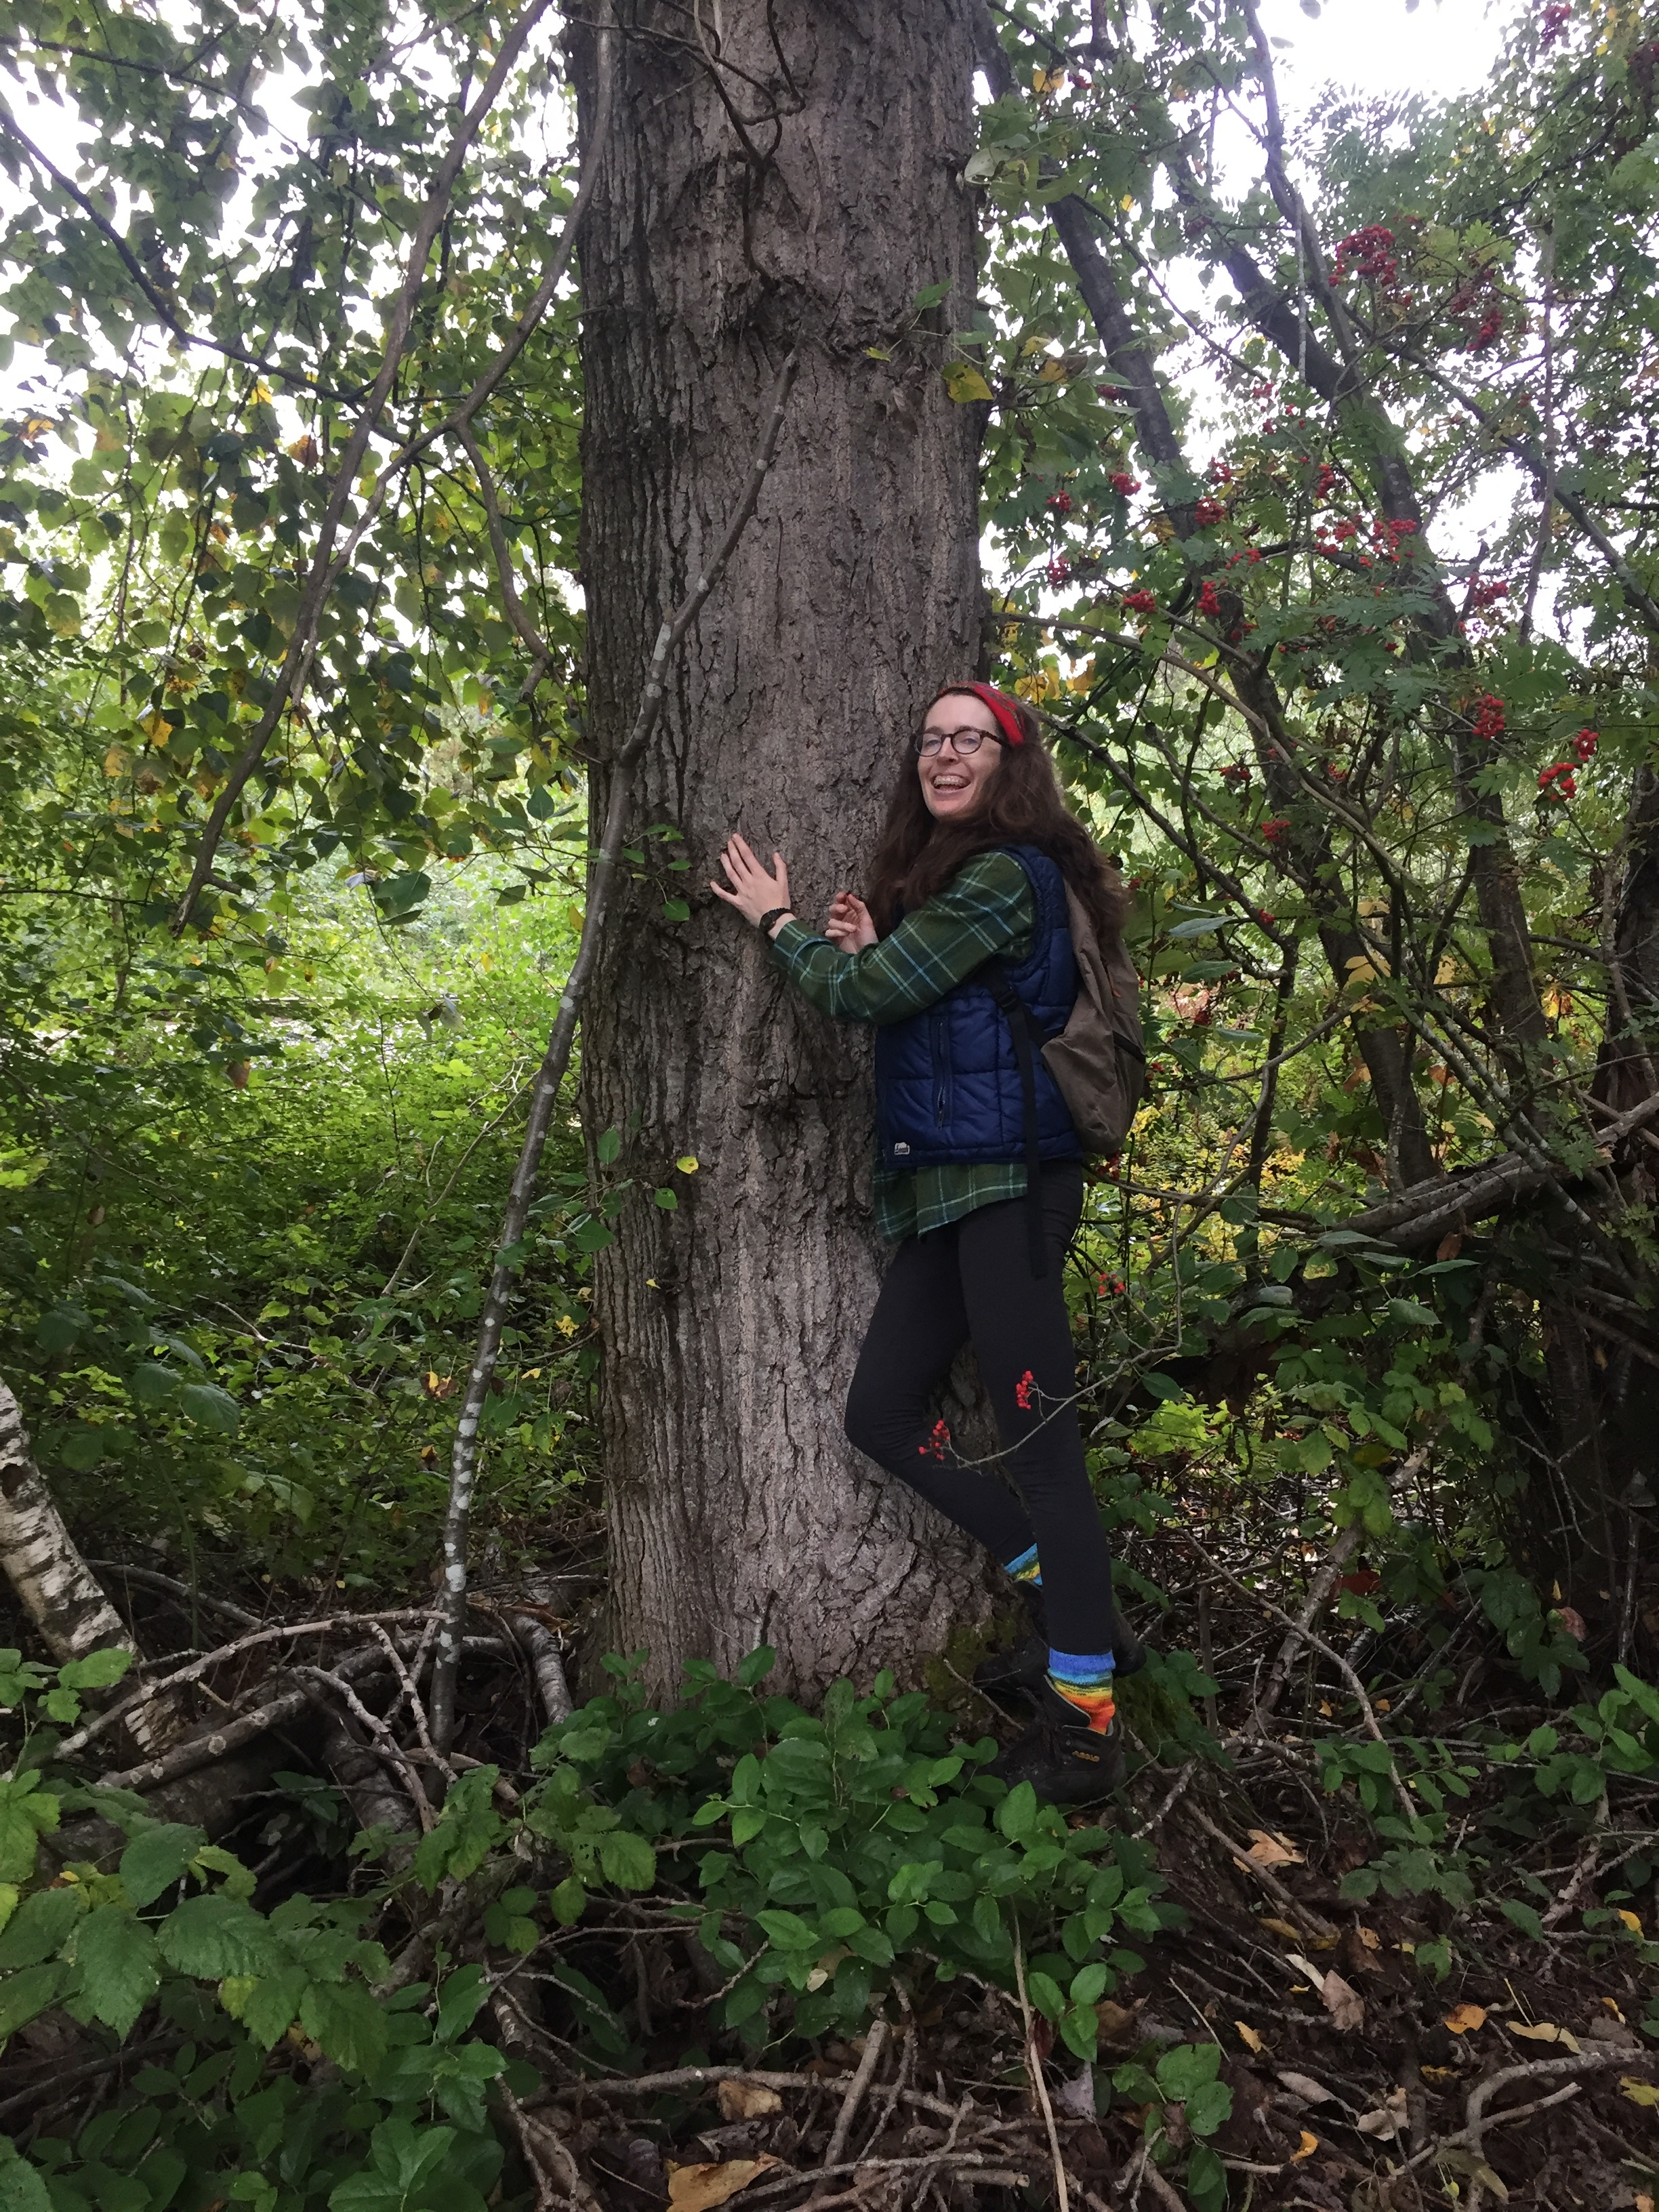 A tree hunter and her quarry.